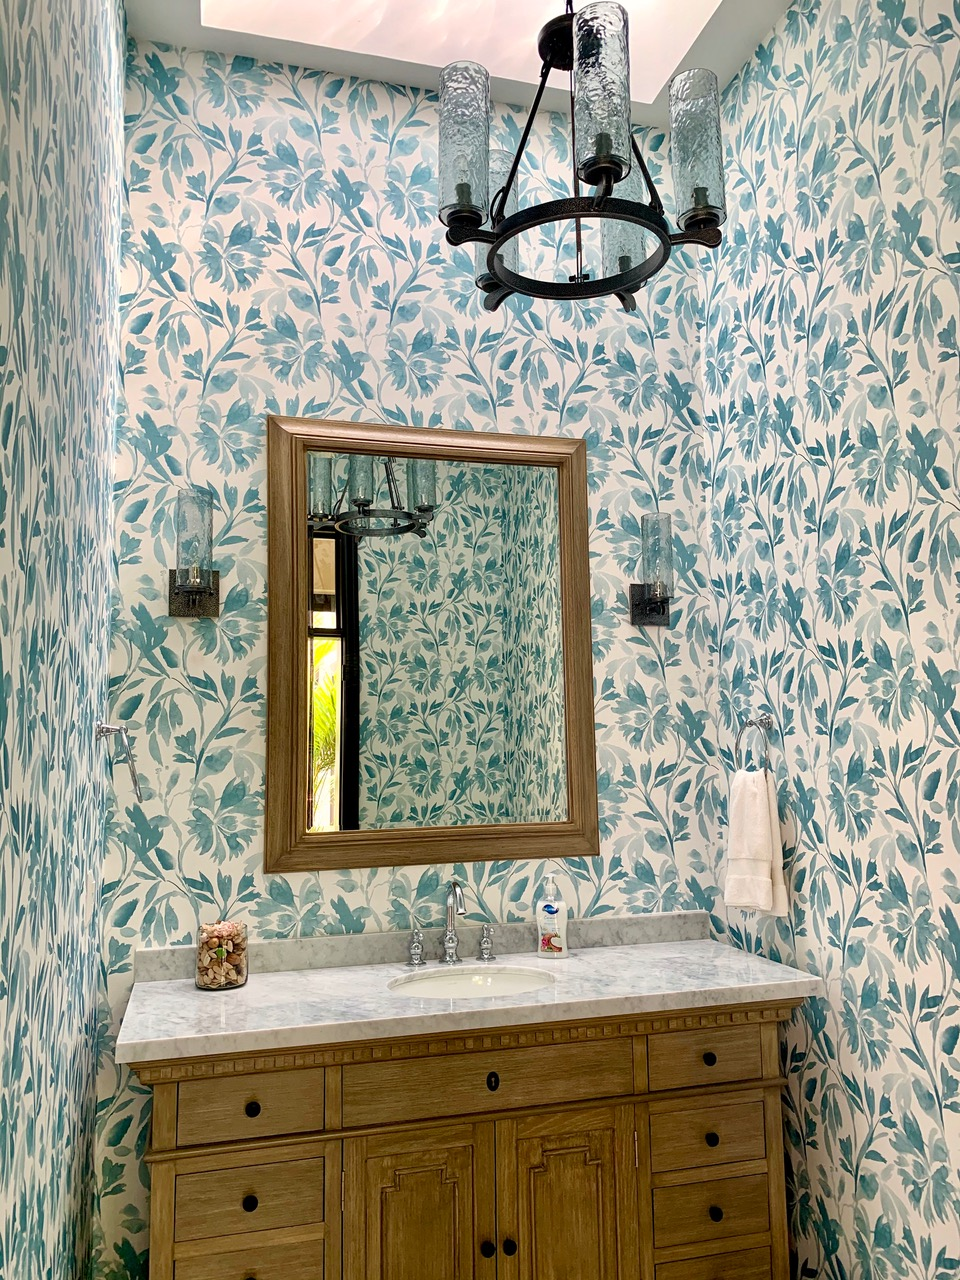 Fabulous guest bathroom.